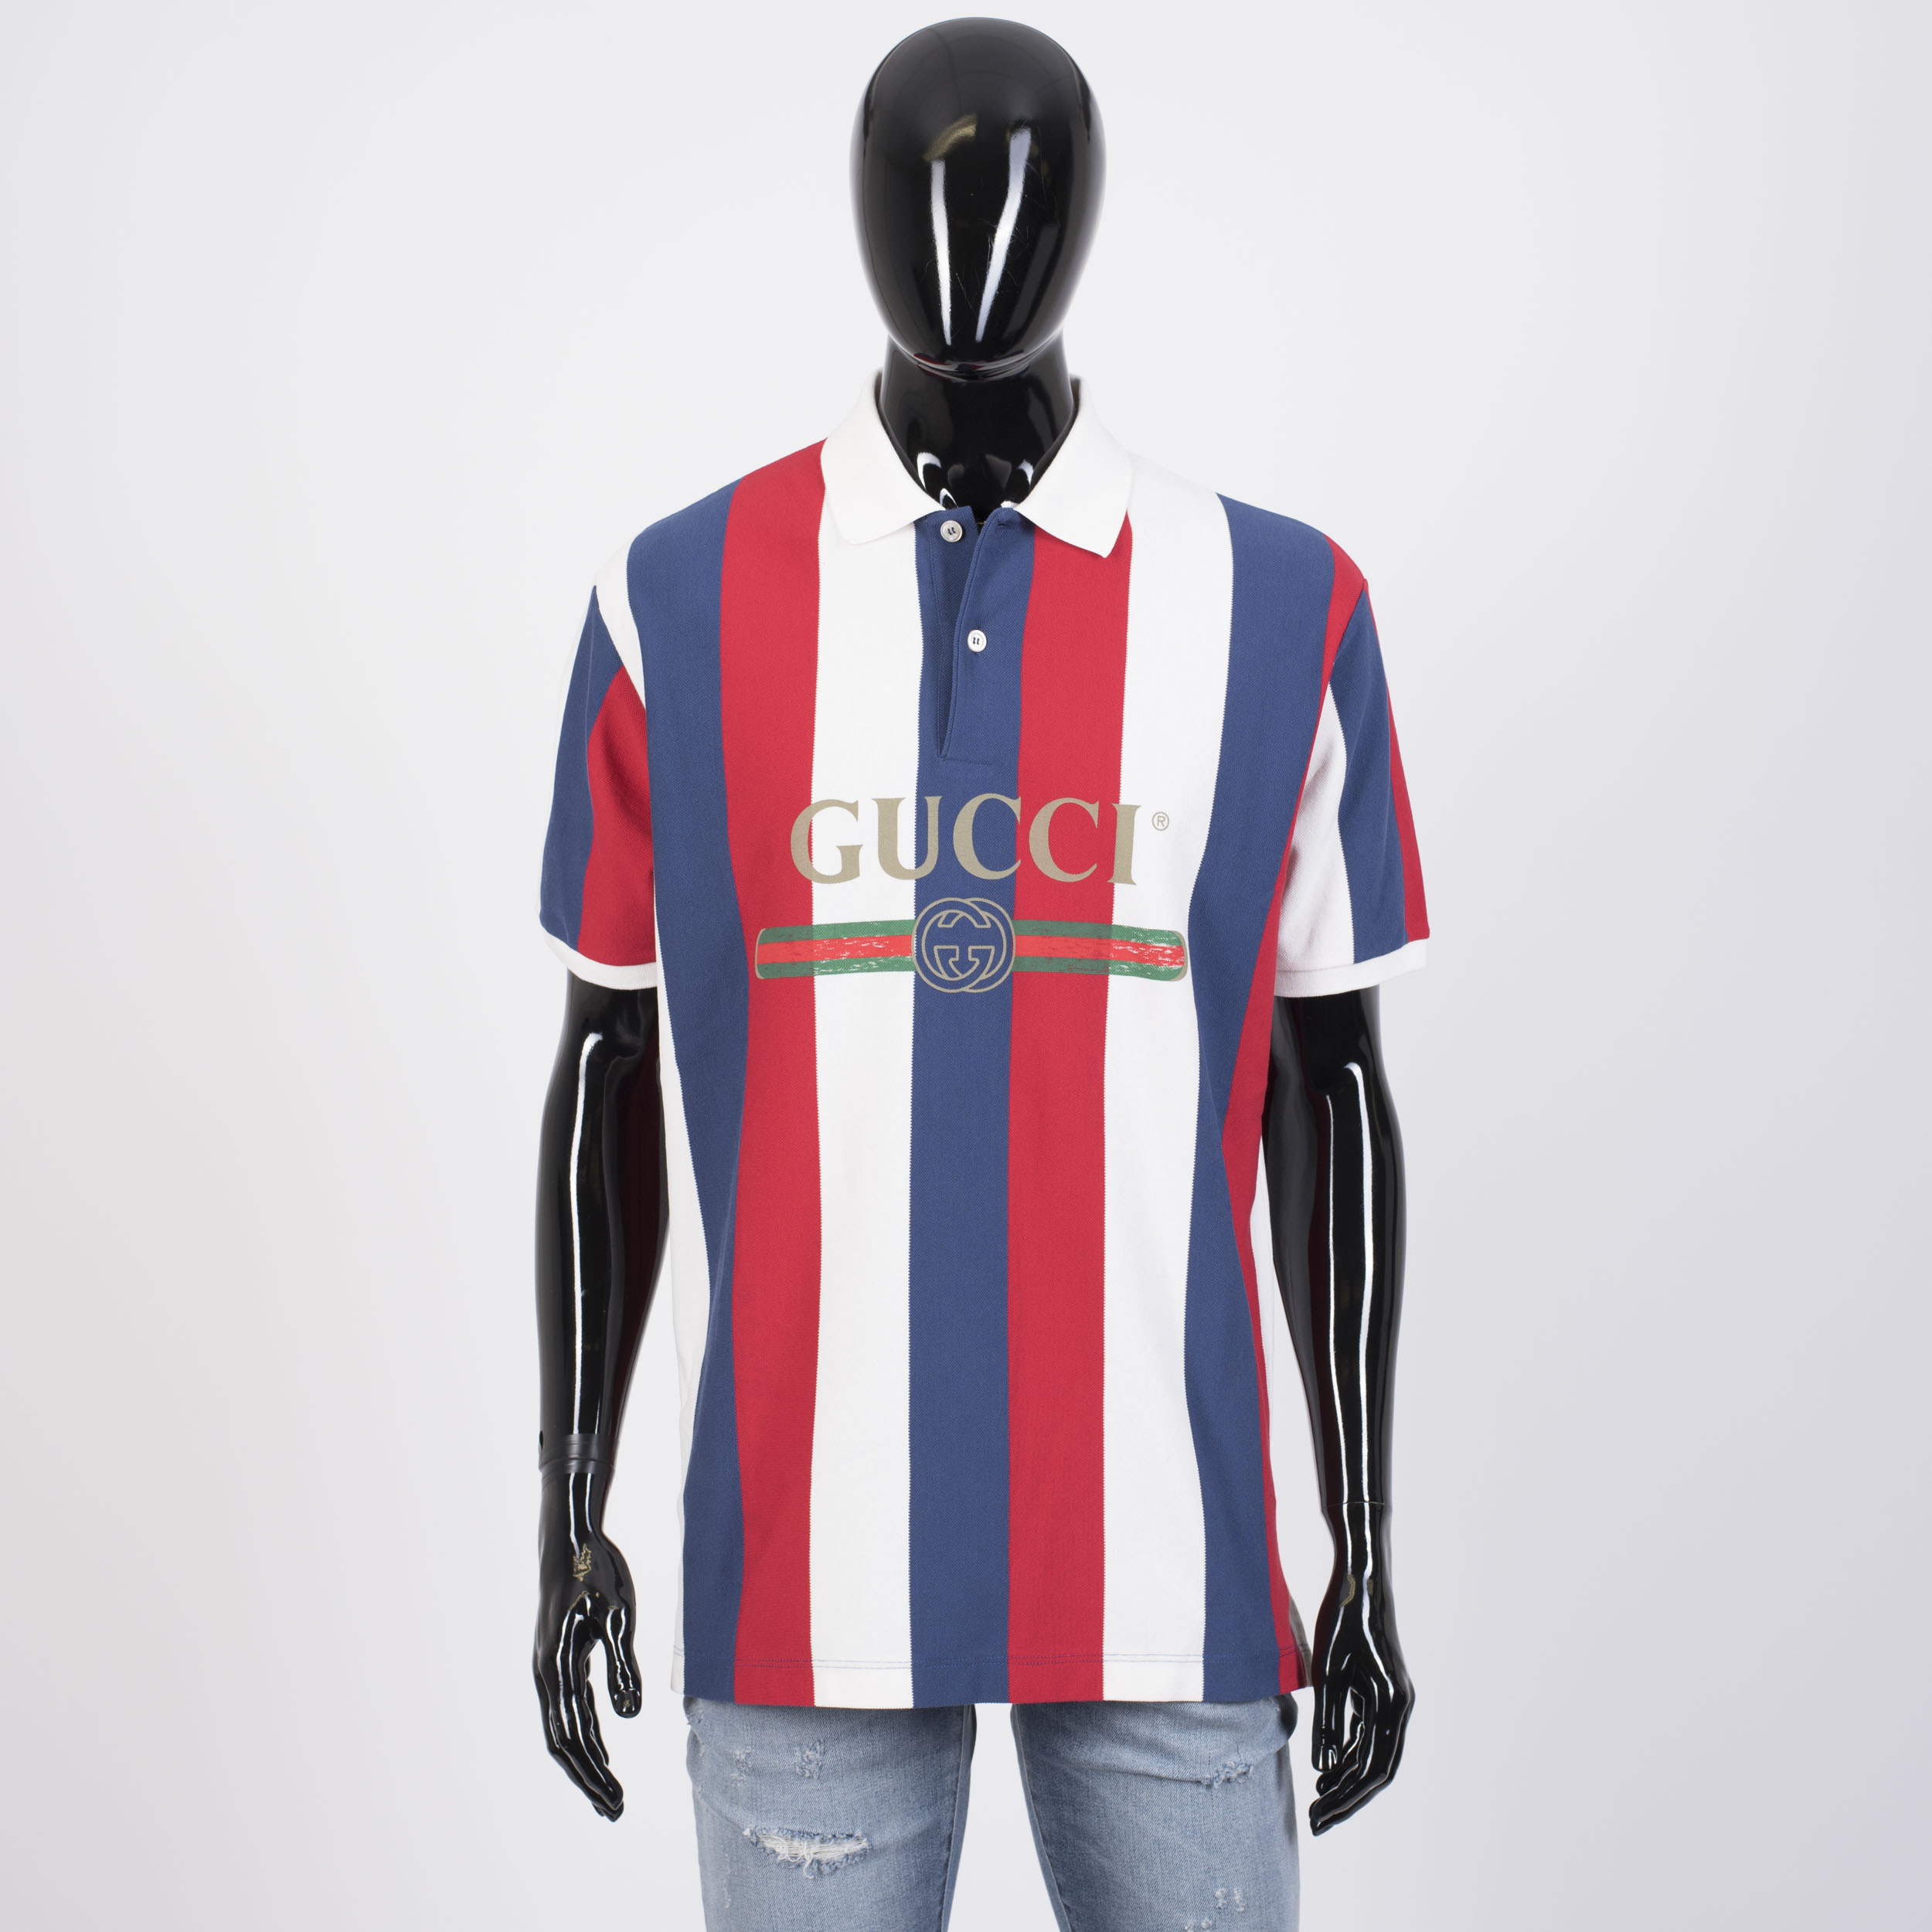 7e8d8650f Gucci Baiadera Logo Polo Shirt In White, Blue & Red Striped Cotton Piquet |  Grailed